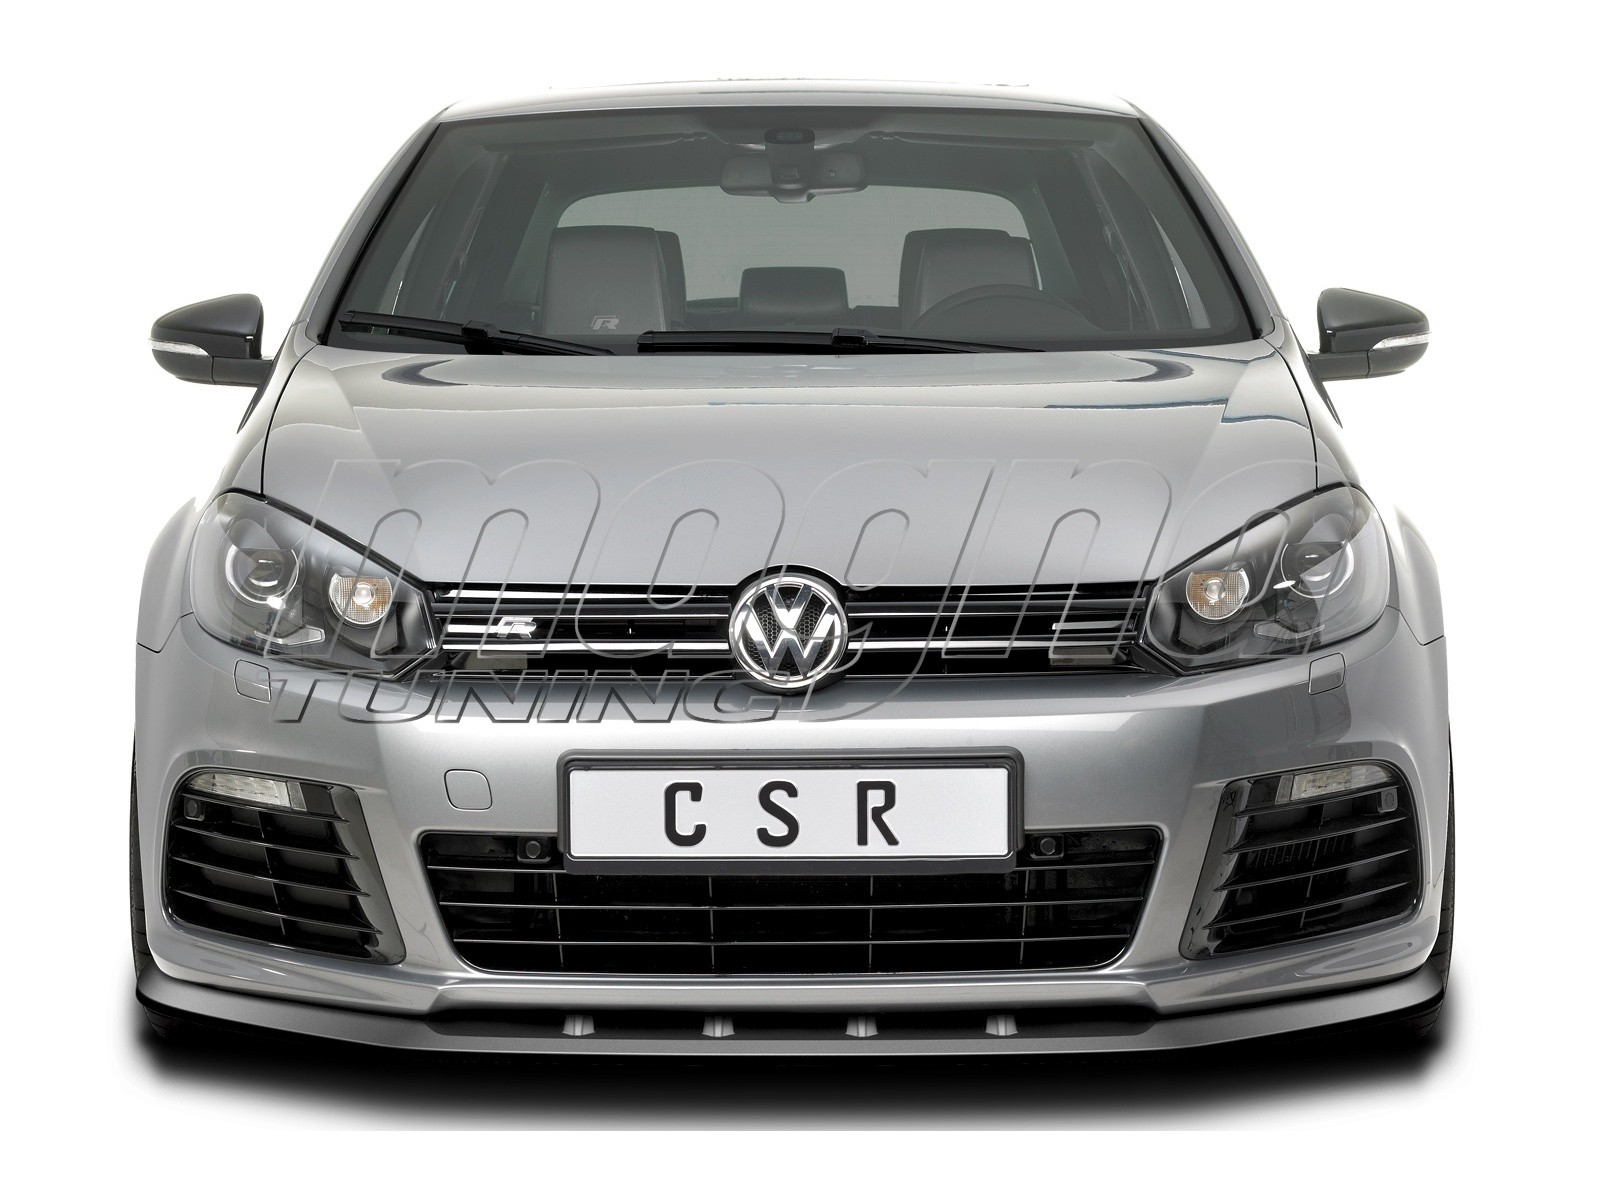 VW Golf 6 R Line Citrix Frontansatz on 2012 vw passat b6